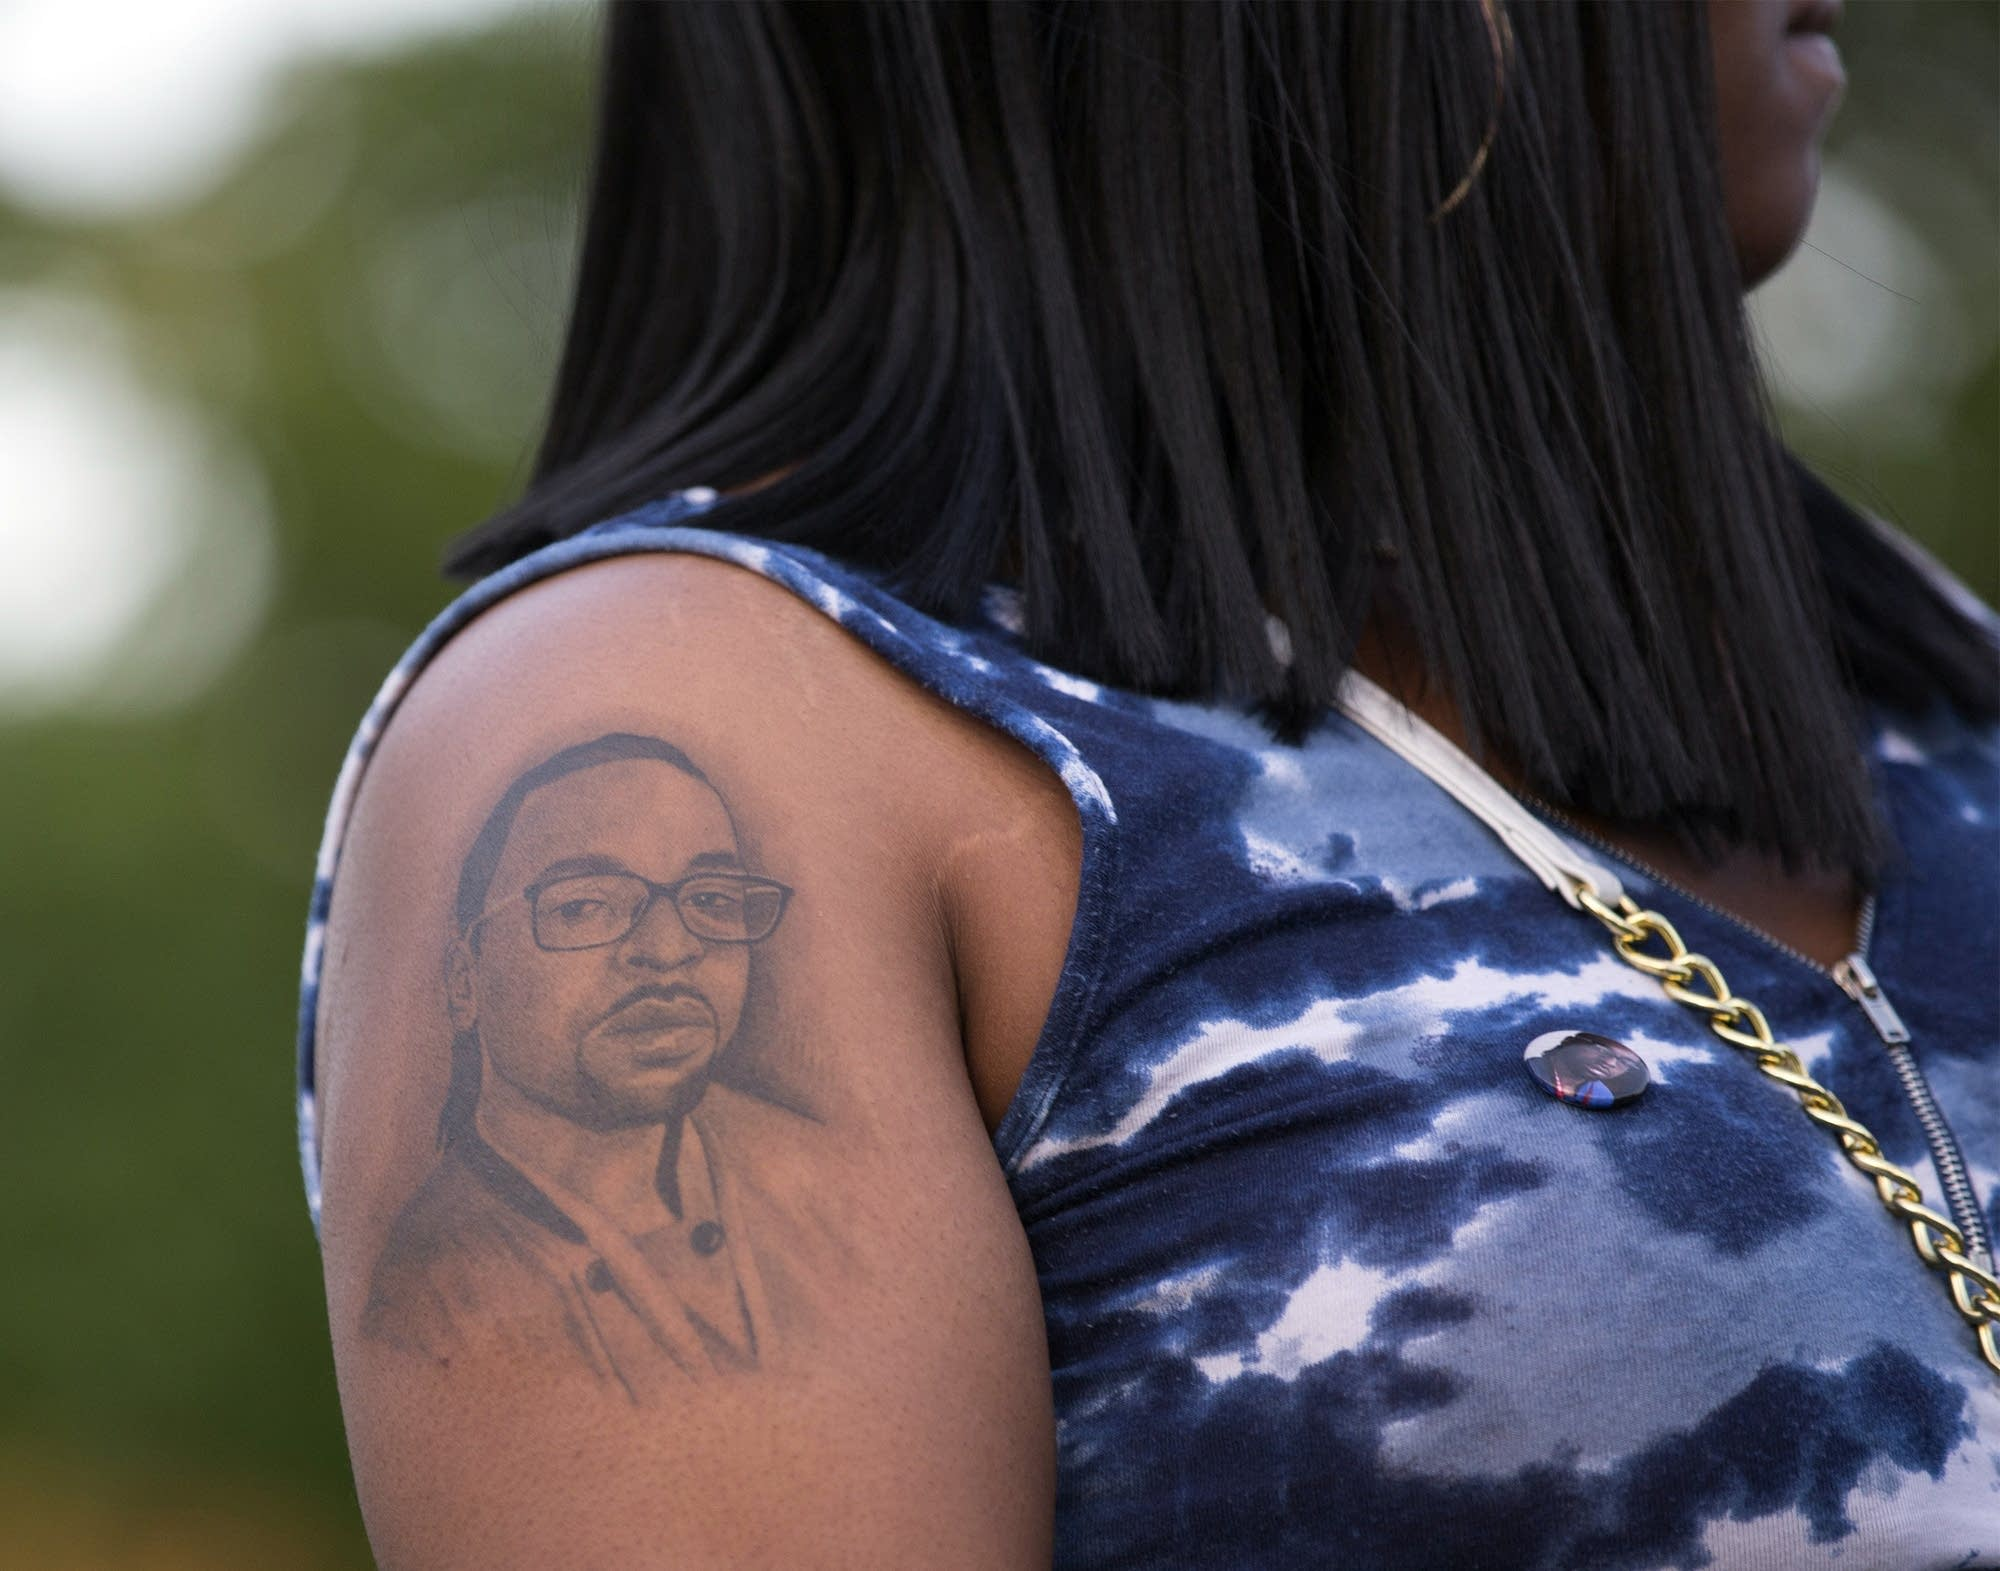 Philando Castile's sister Allysza has a tattoo of her brother on her arm.